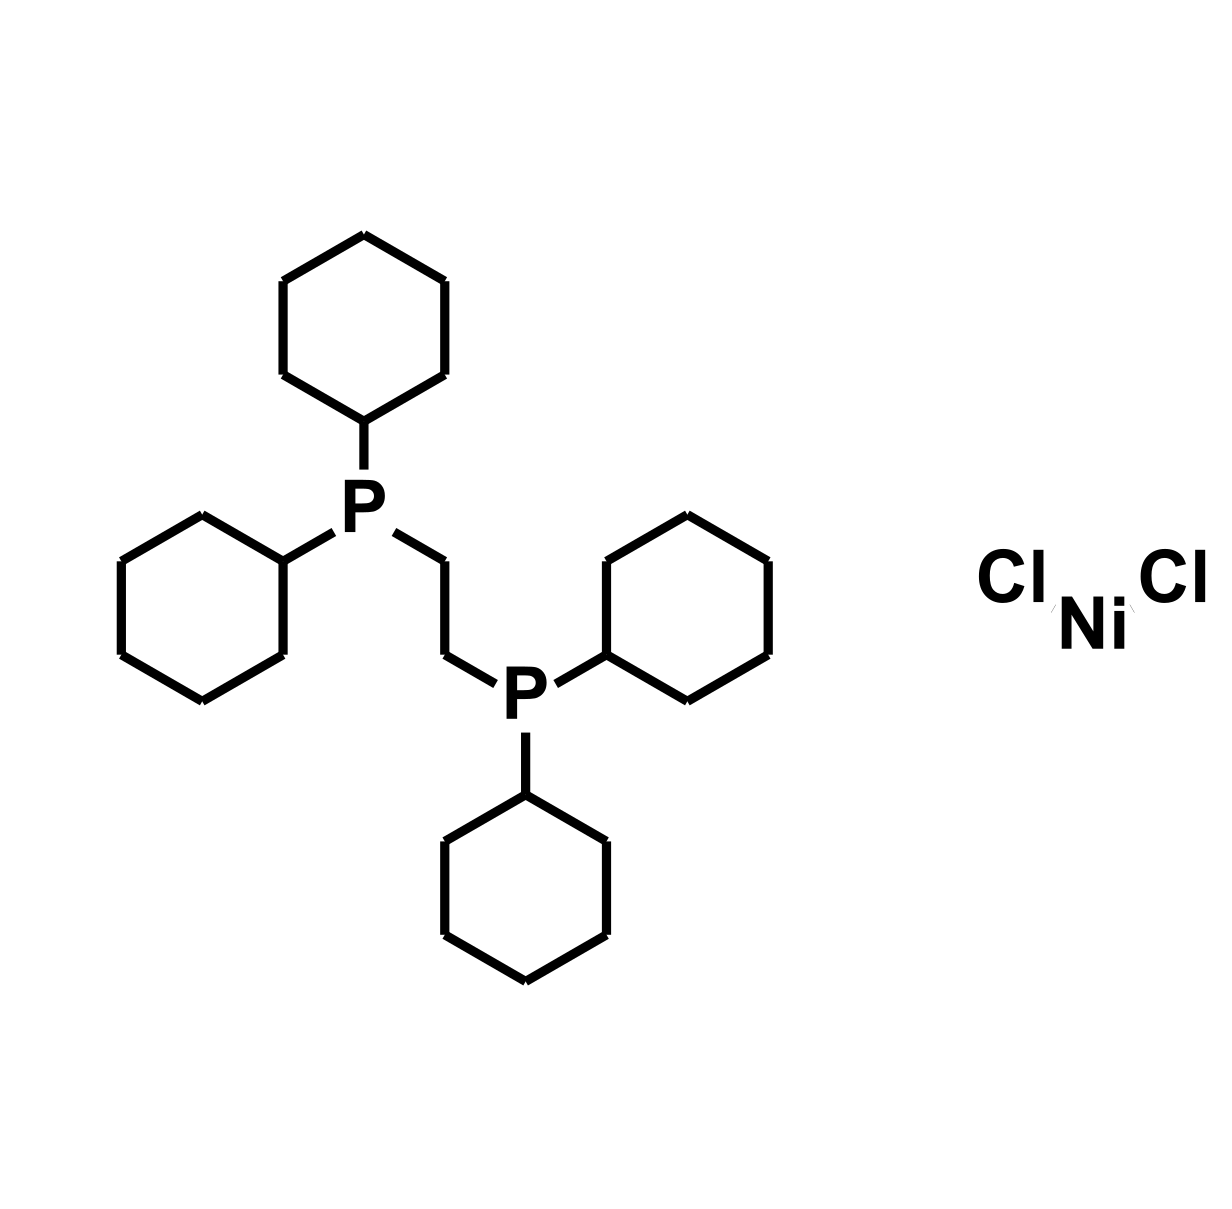 (1,2-Bis(dicyclohexylphosphino)ethane)dichloronickel(II) Chemical Structure